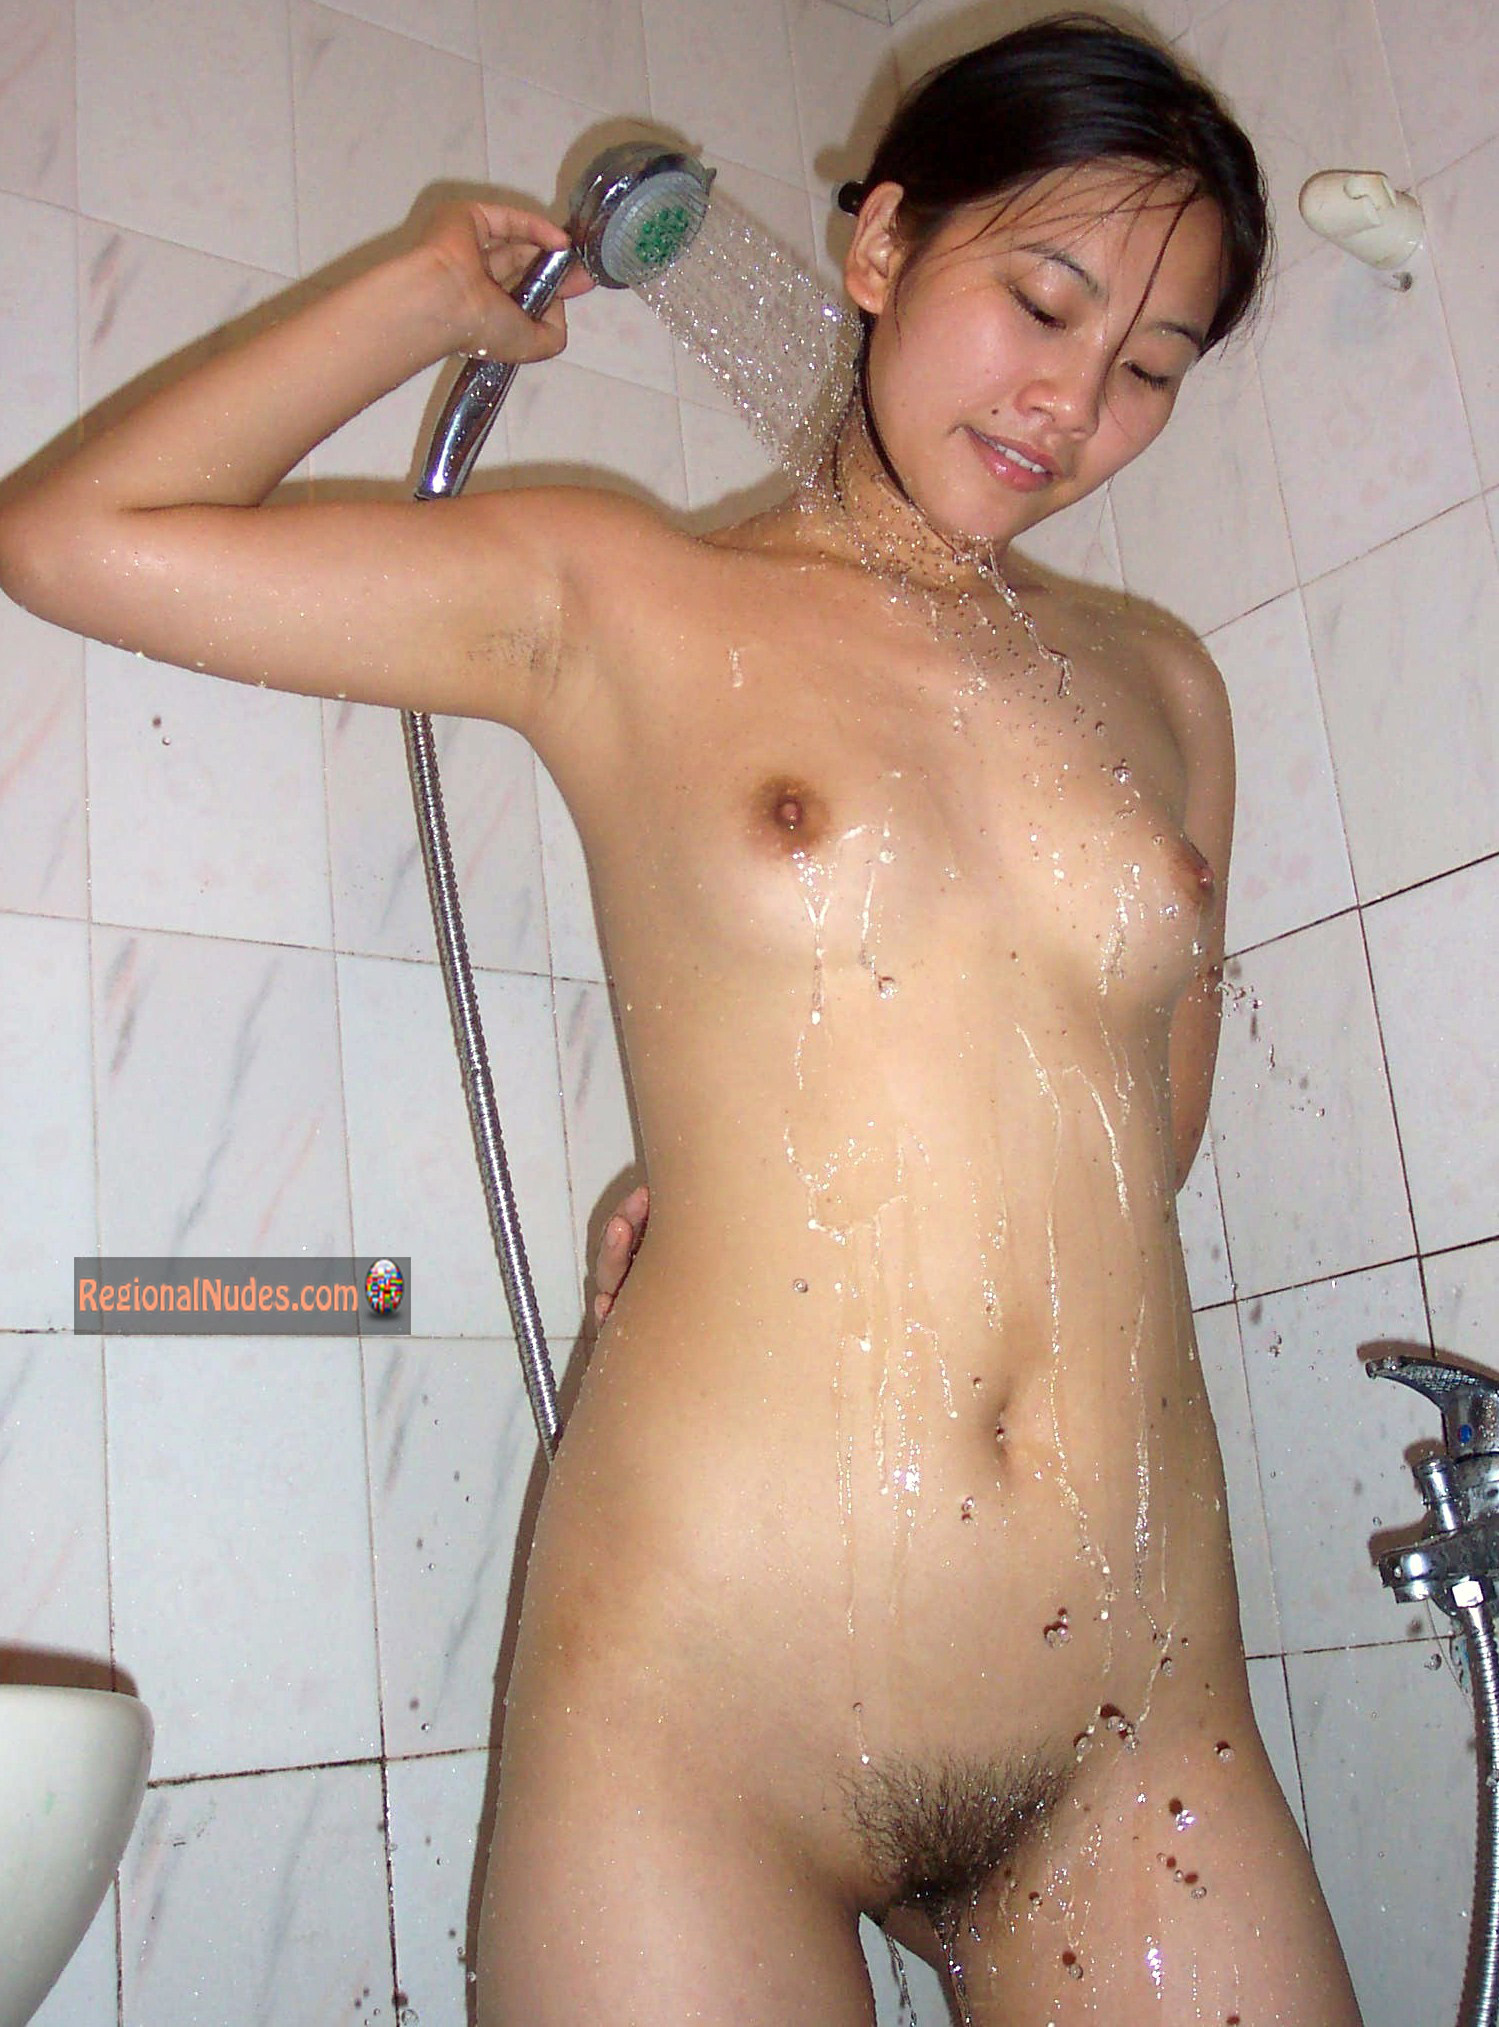 Chinese Teen Girl Showering Nude  Regional Nude Women -3588